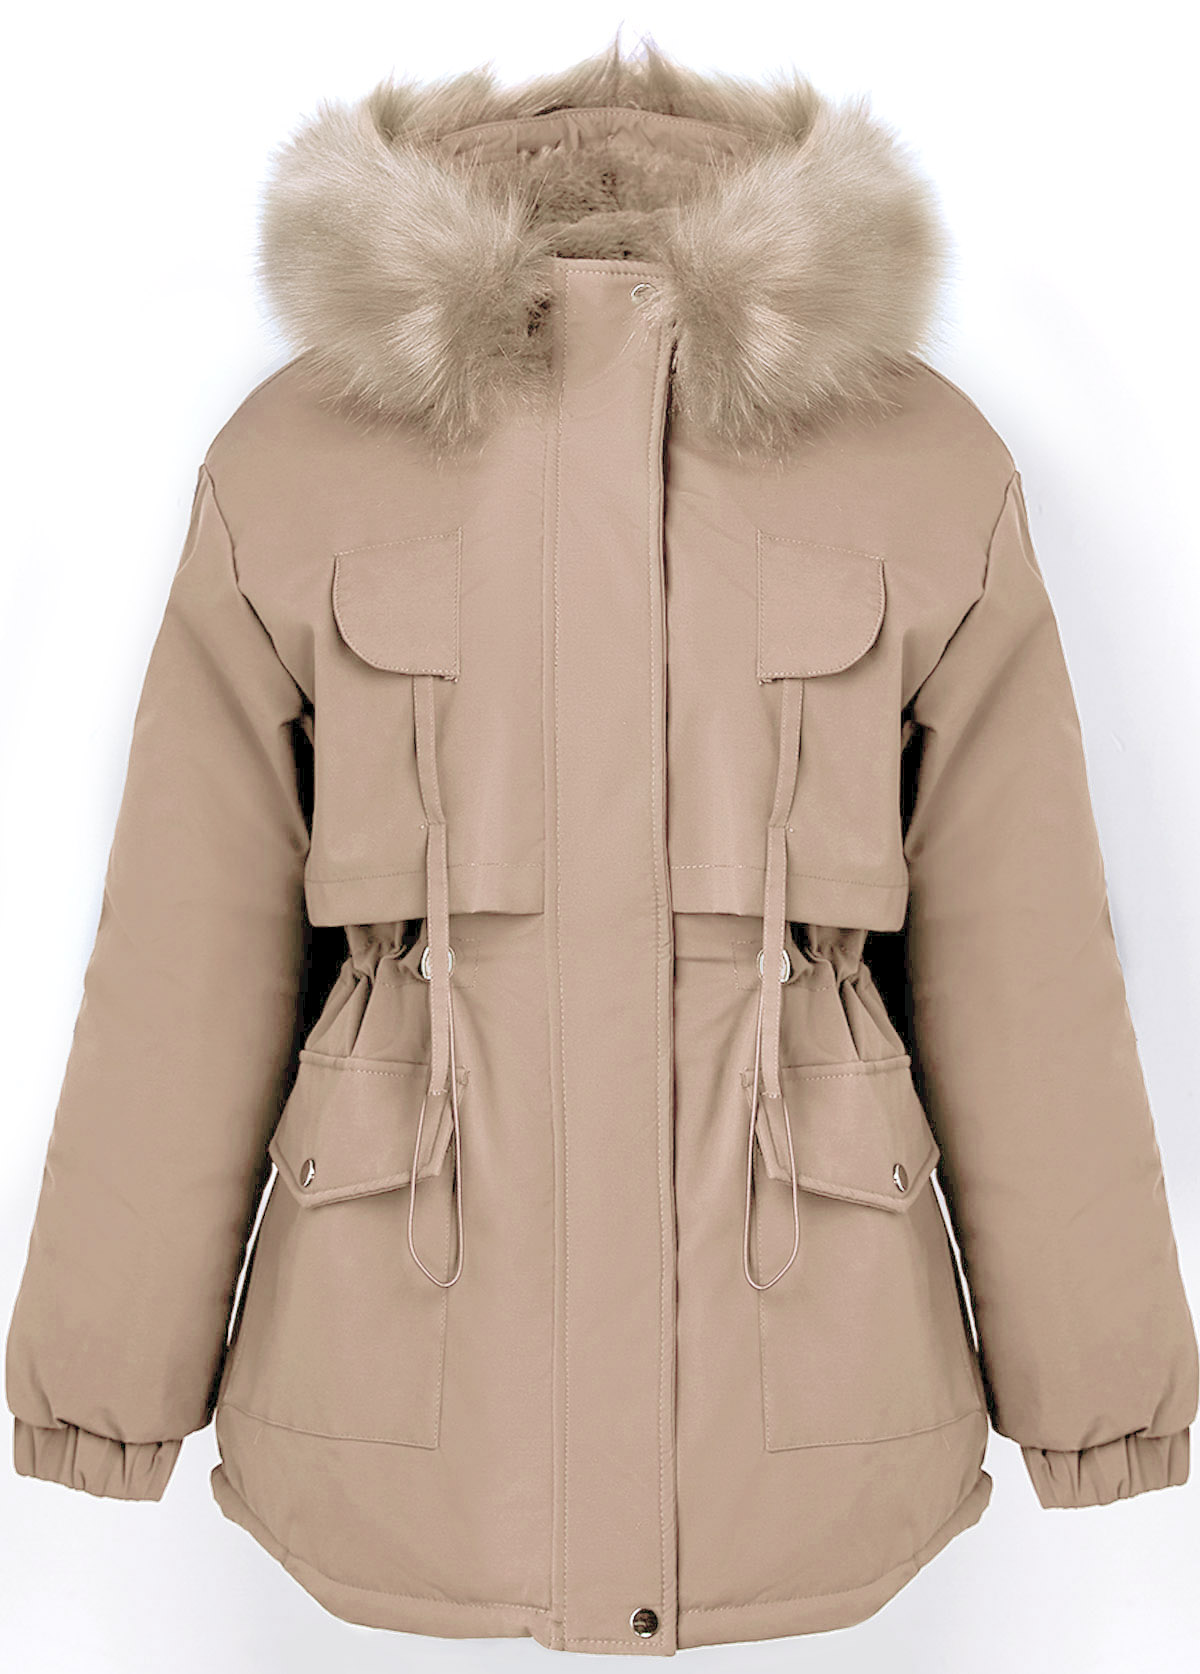 Drawstring Waist Fur Collar Pocket Coat